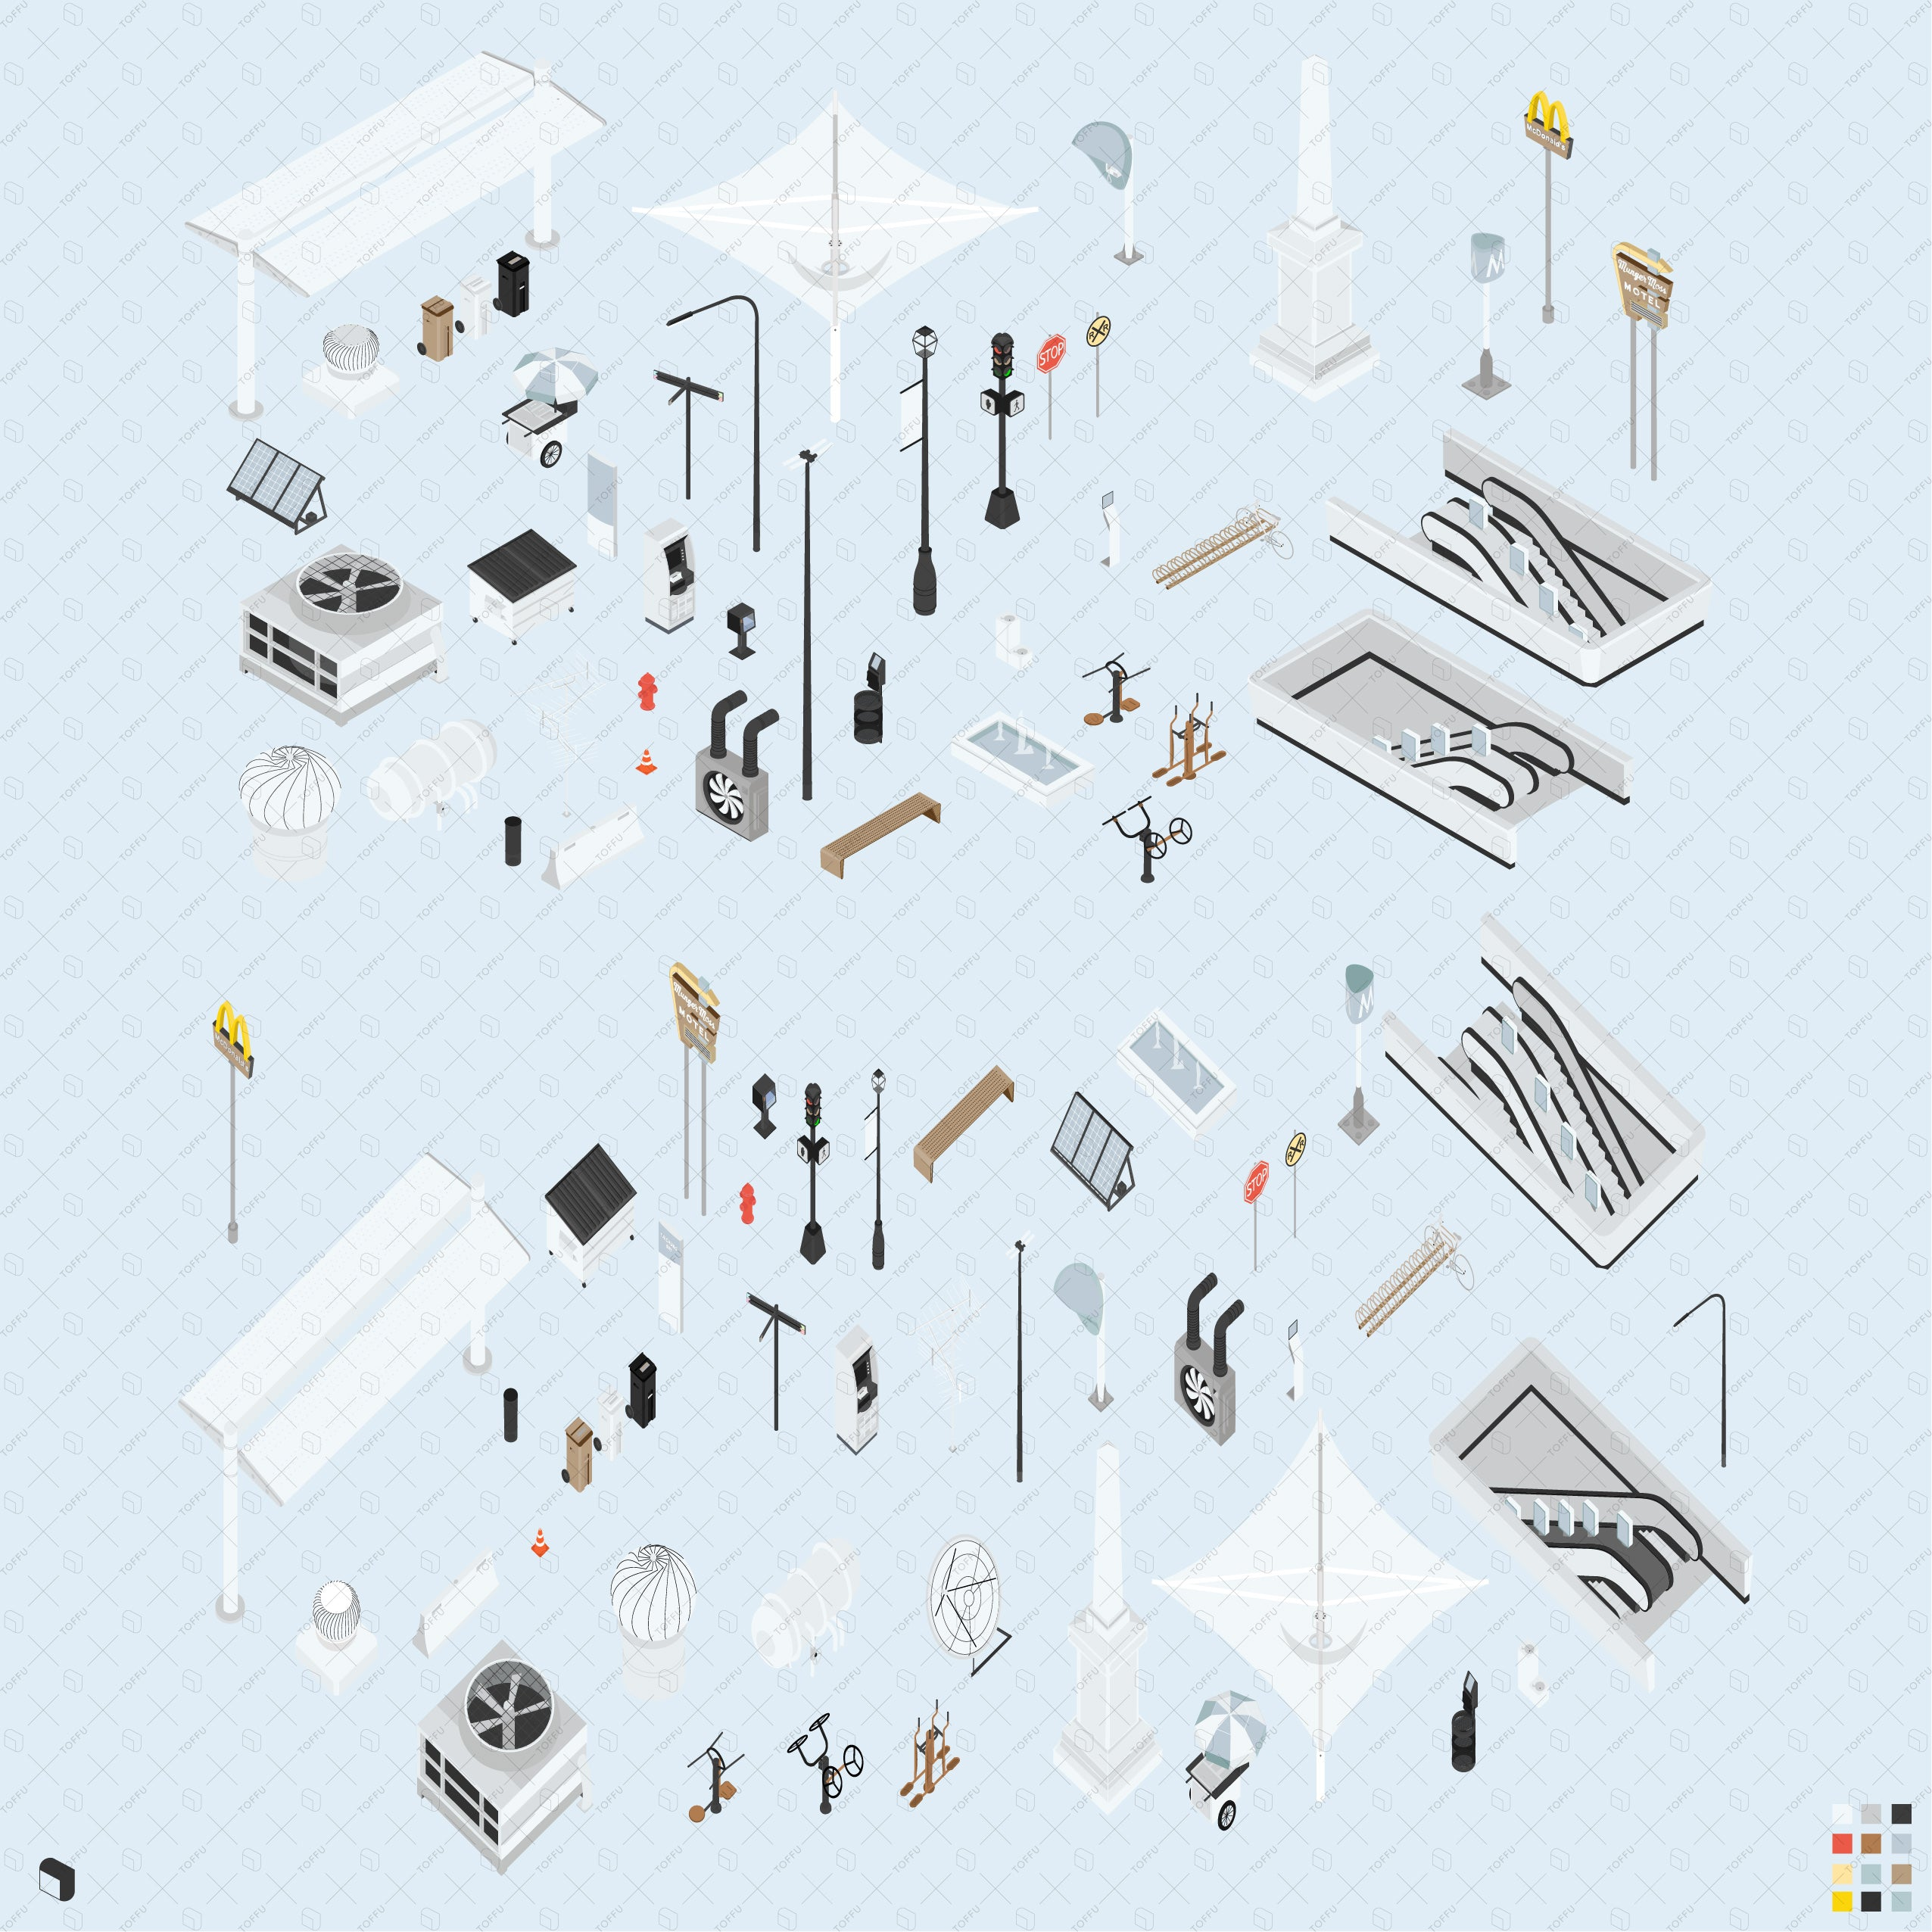 city furniture axonometric vector drawings